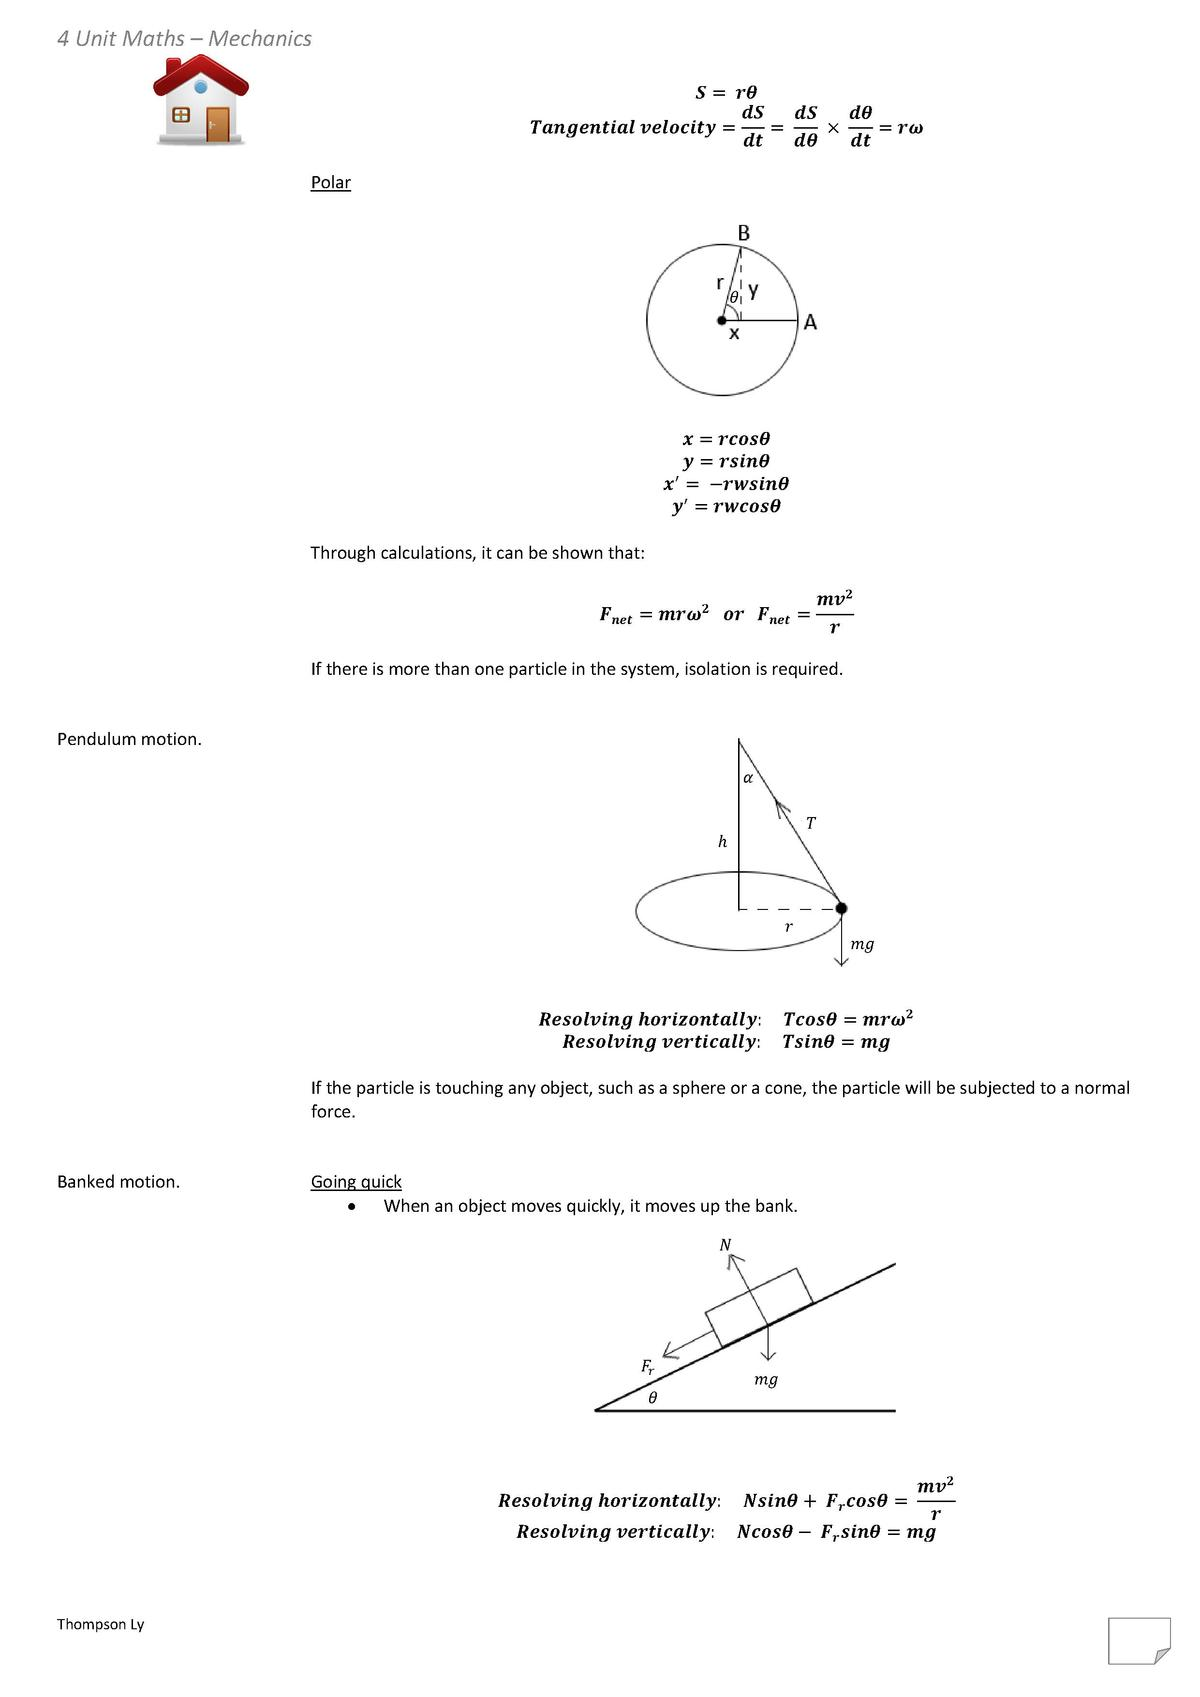 4 Unit Maths     Mechanics  Polar                                                                                         ...